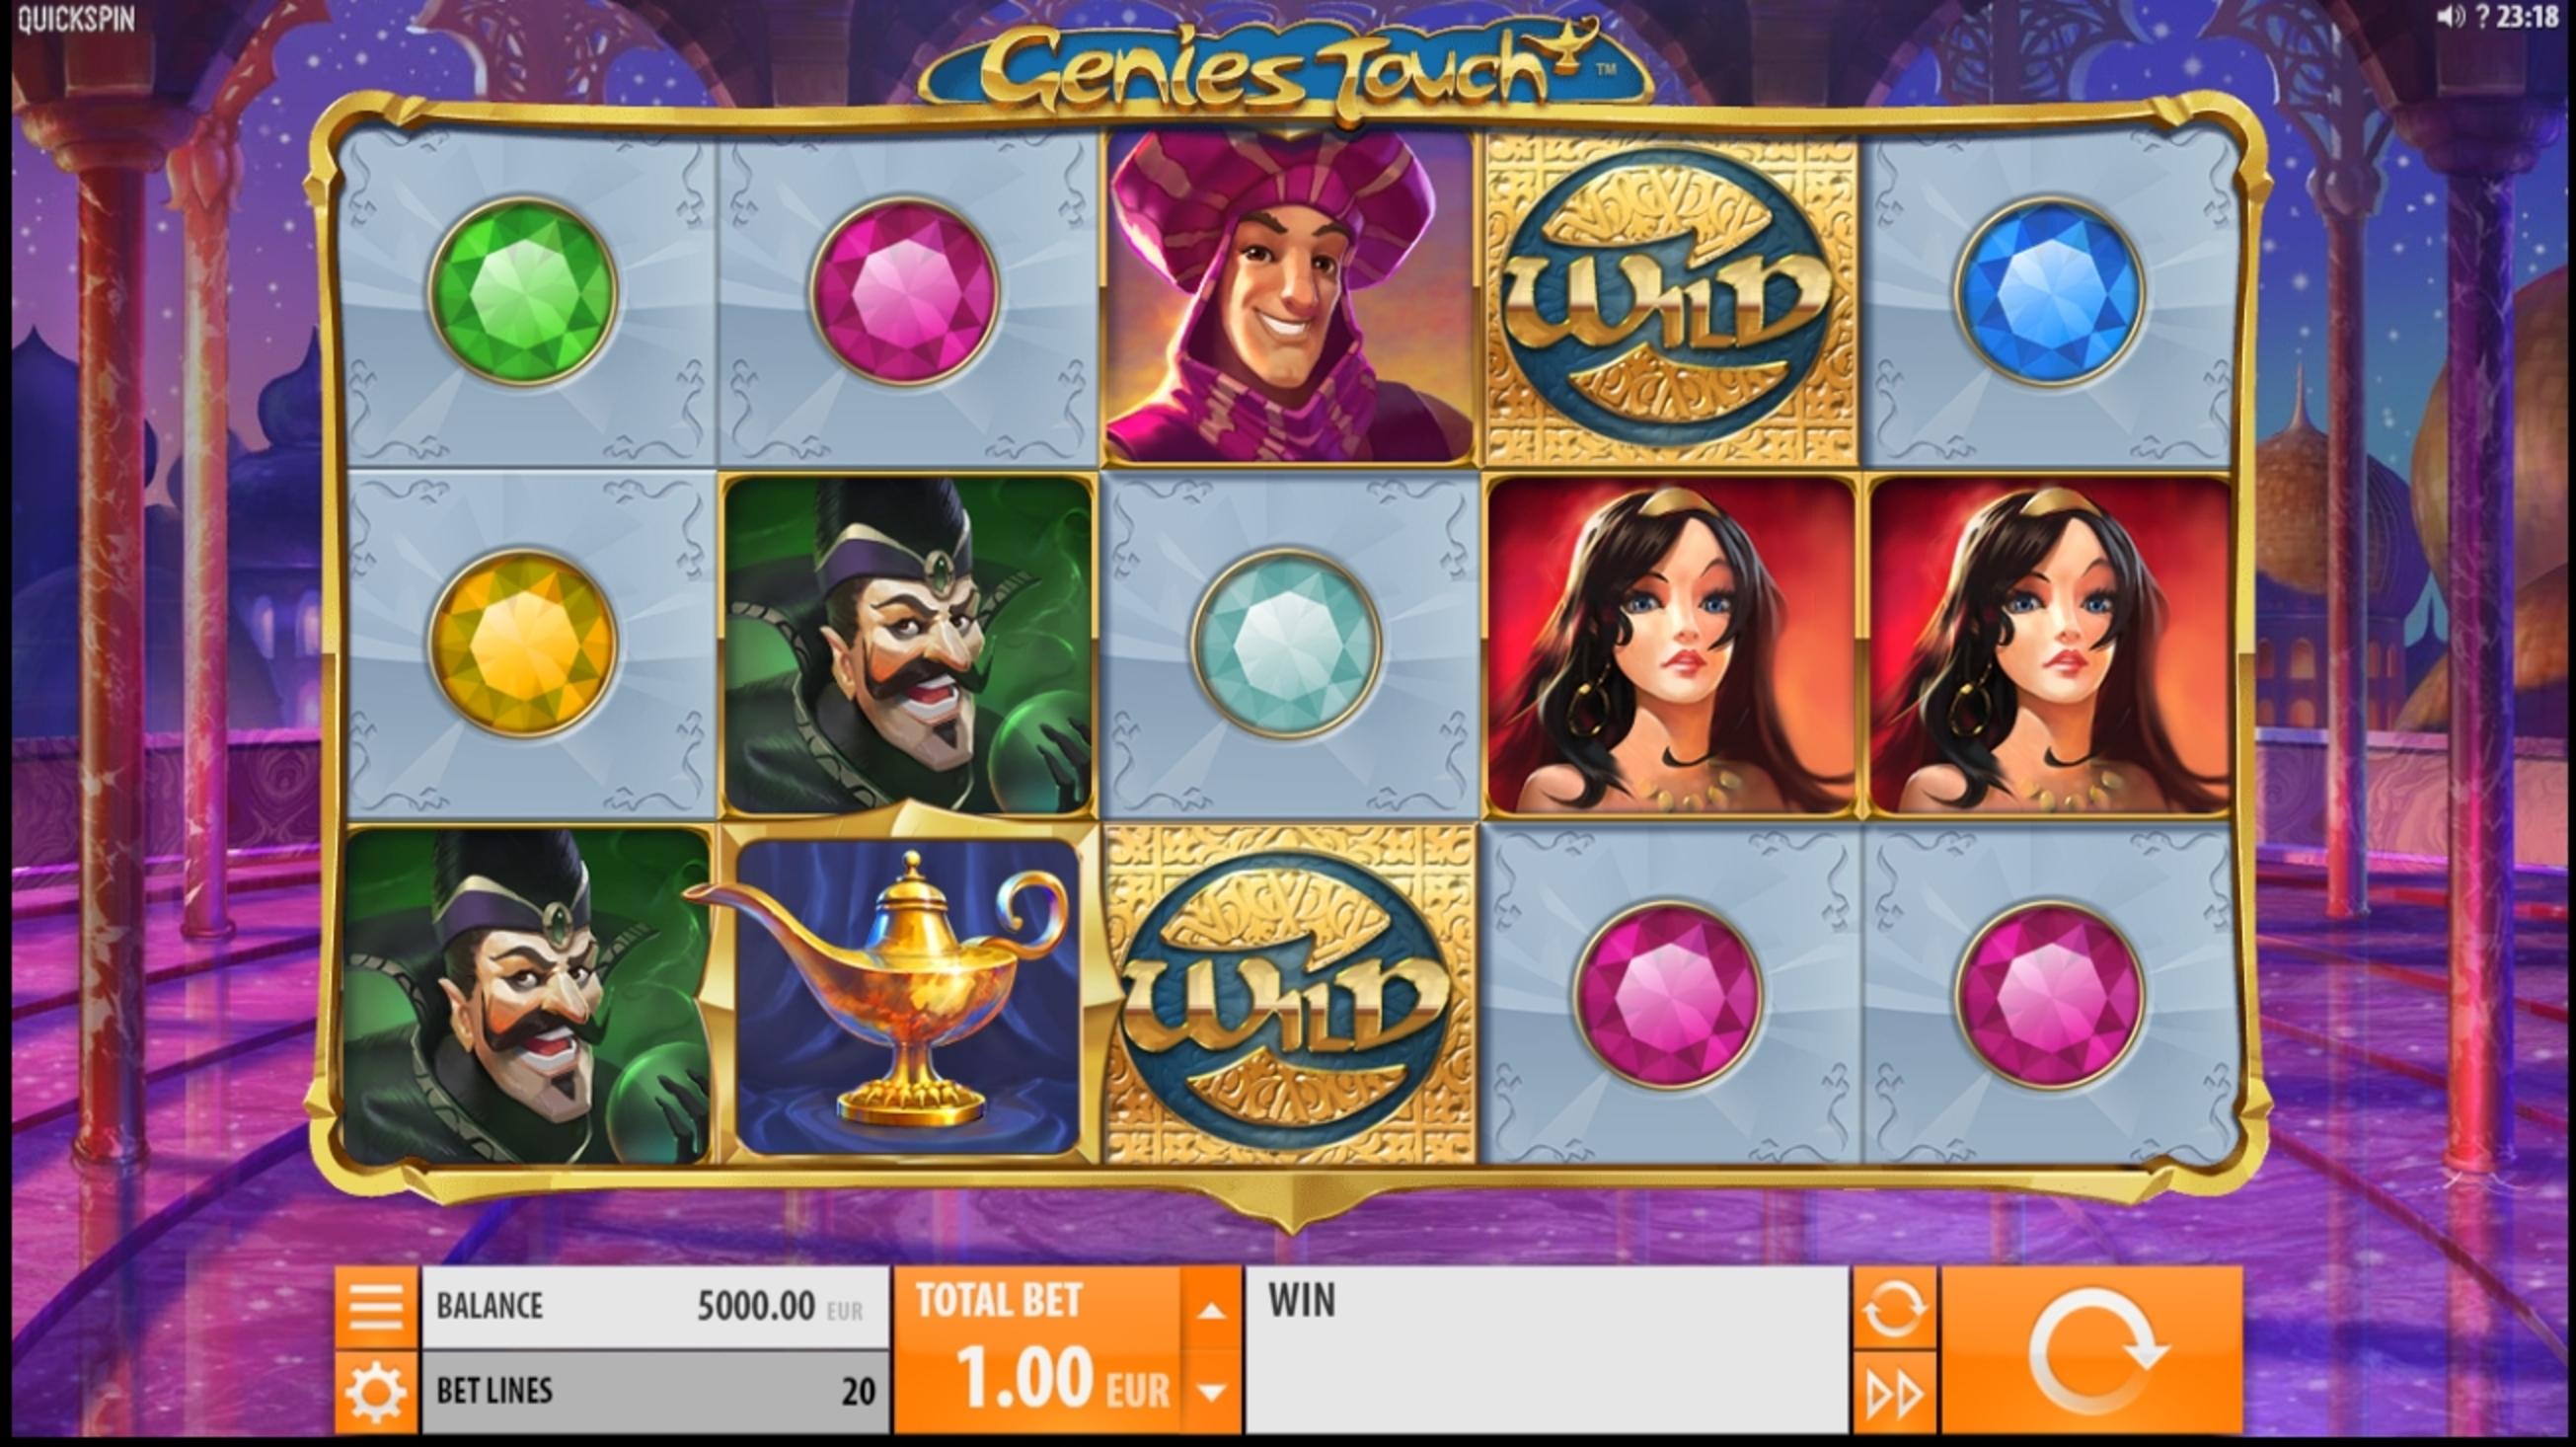 Reels in Genies Touch Slot Game by Quickspin